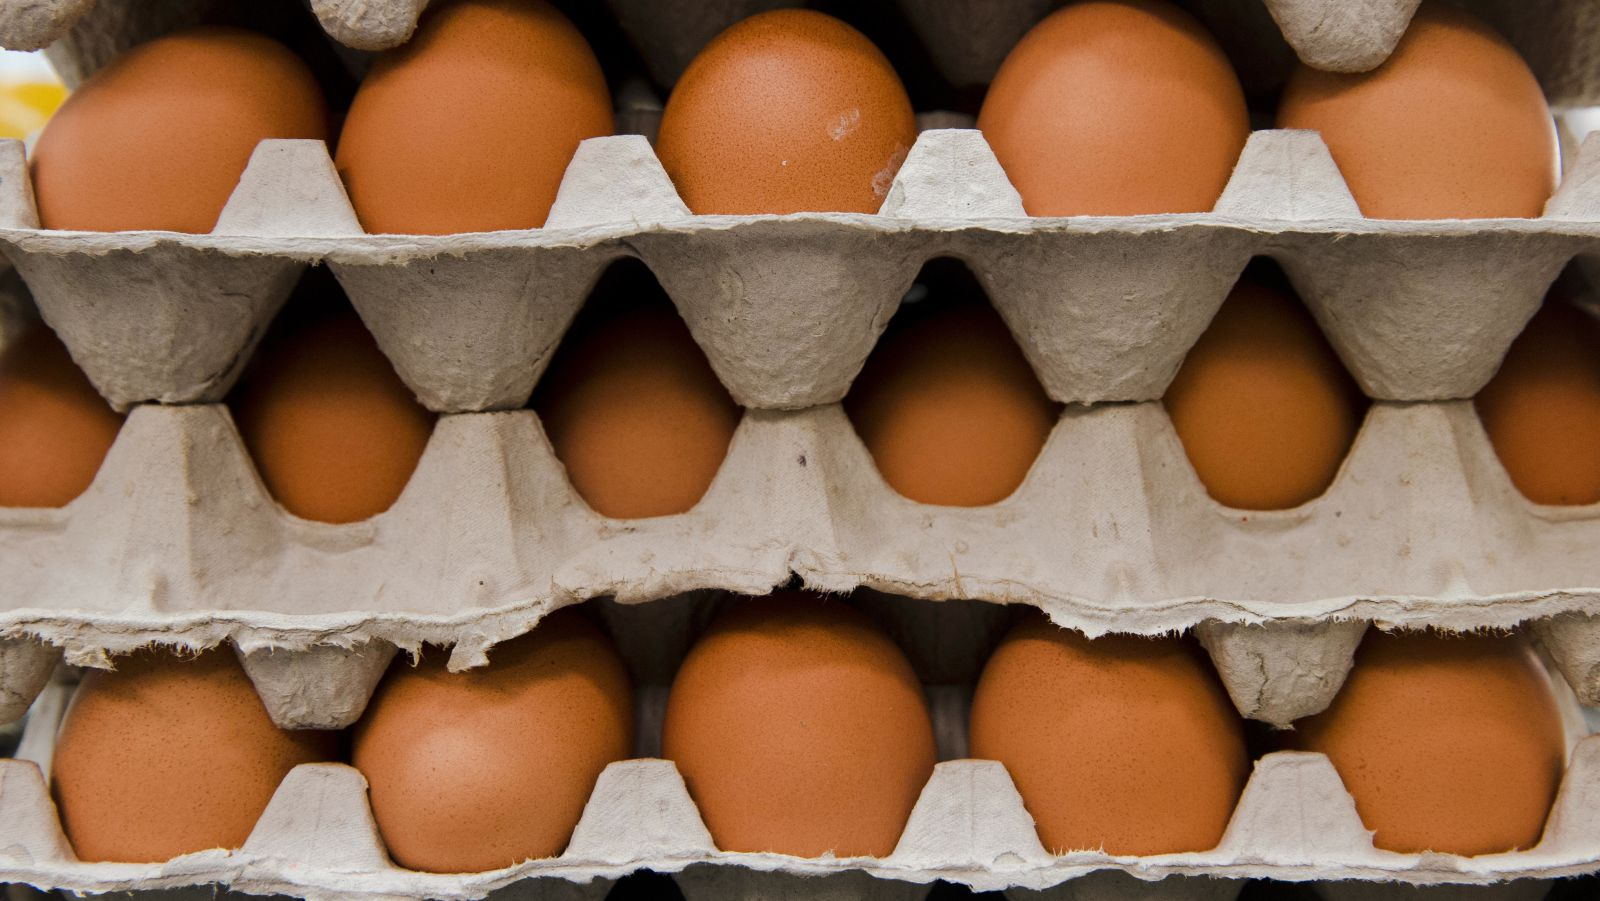 Egg-cellent living conditions? Unlikely.